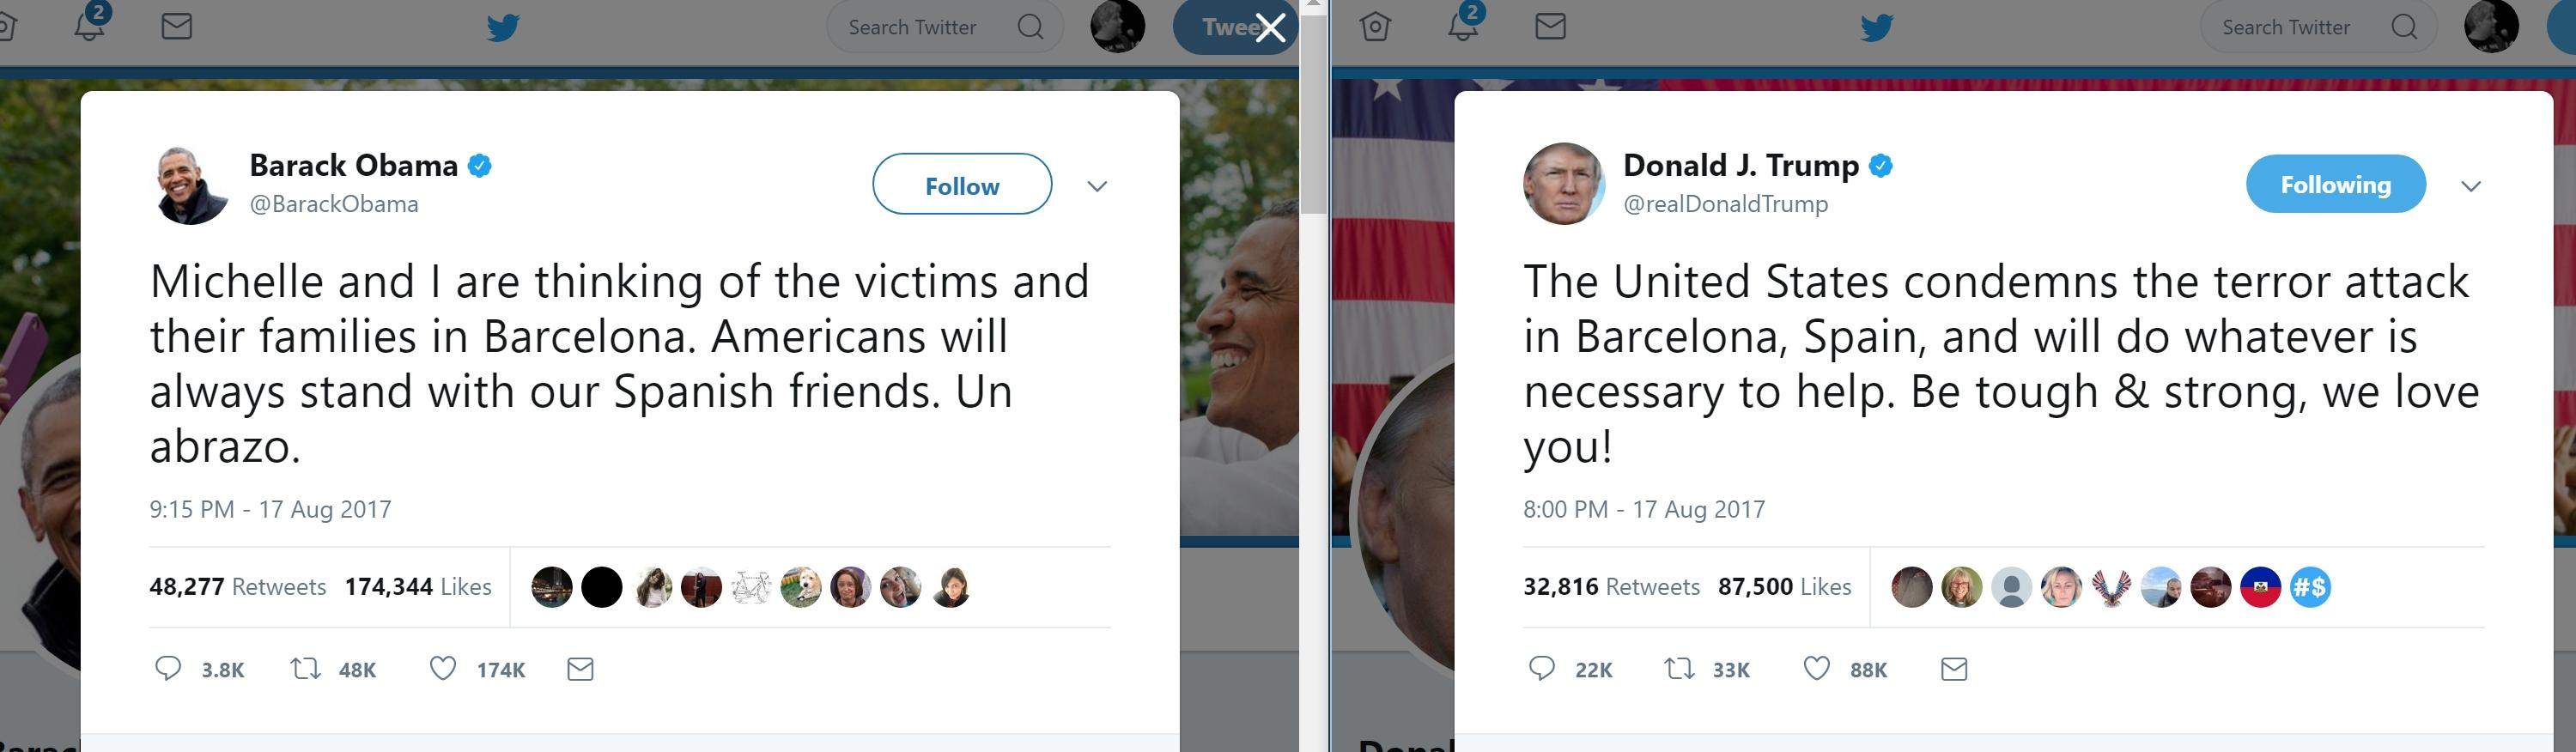 Obama's Post-Barcelona Attack Tweet Got More Traction Than Trump's